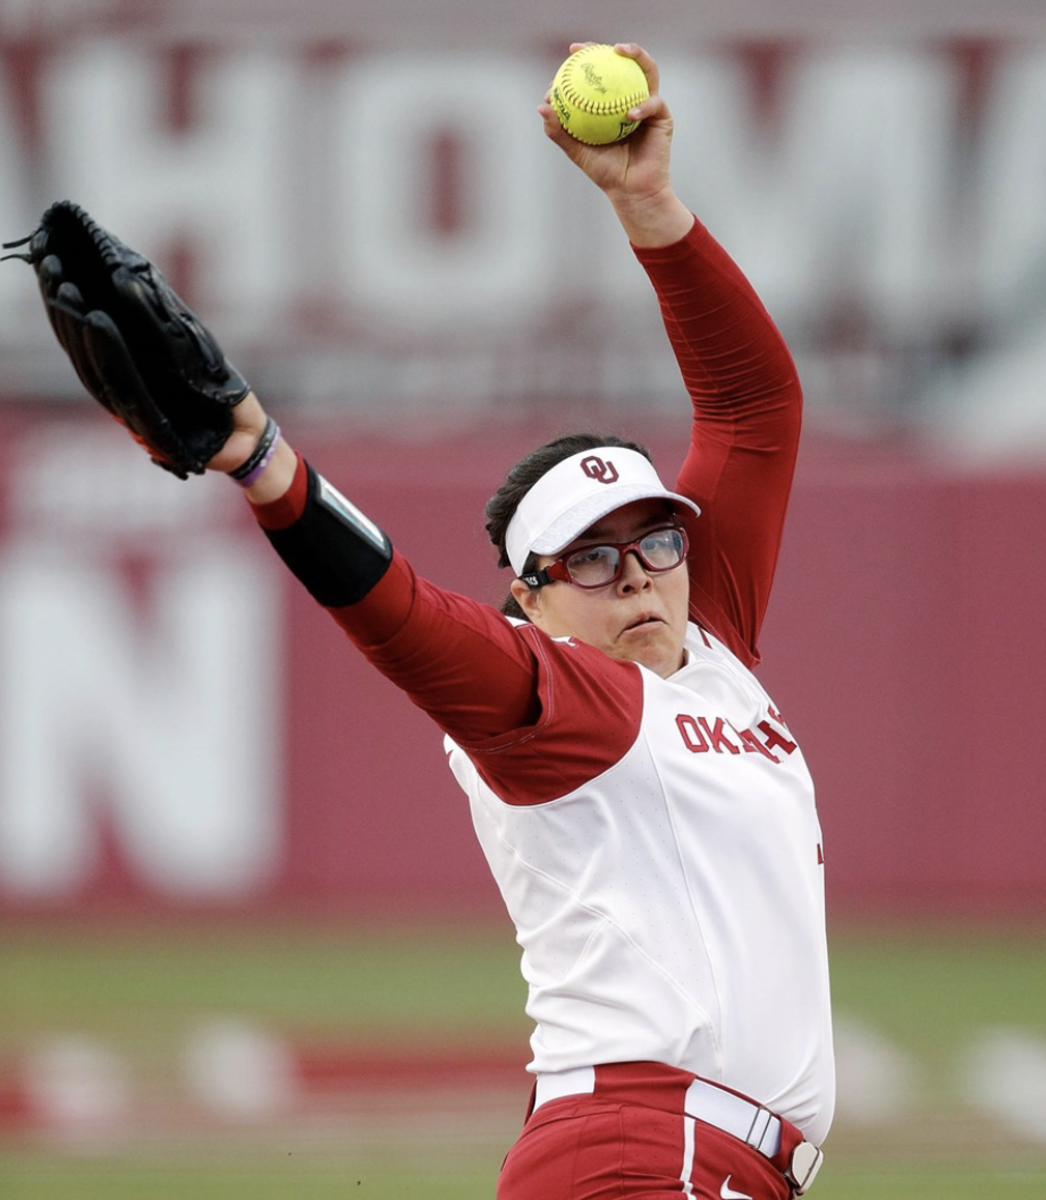 The Sooner pitching staff ranks seventh in the country with a team ERA of 1.45, and has combined for 21 shutouts, the most in college softball.